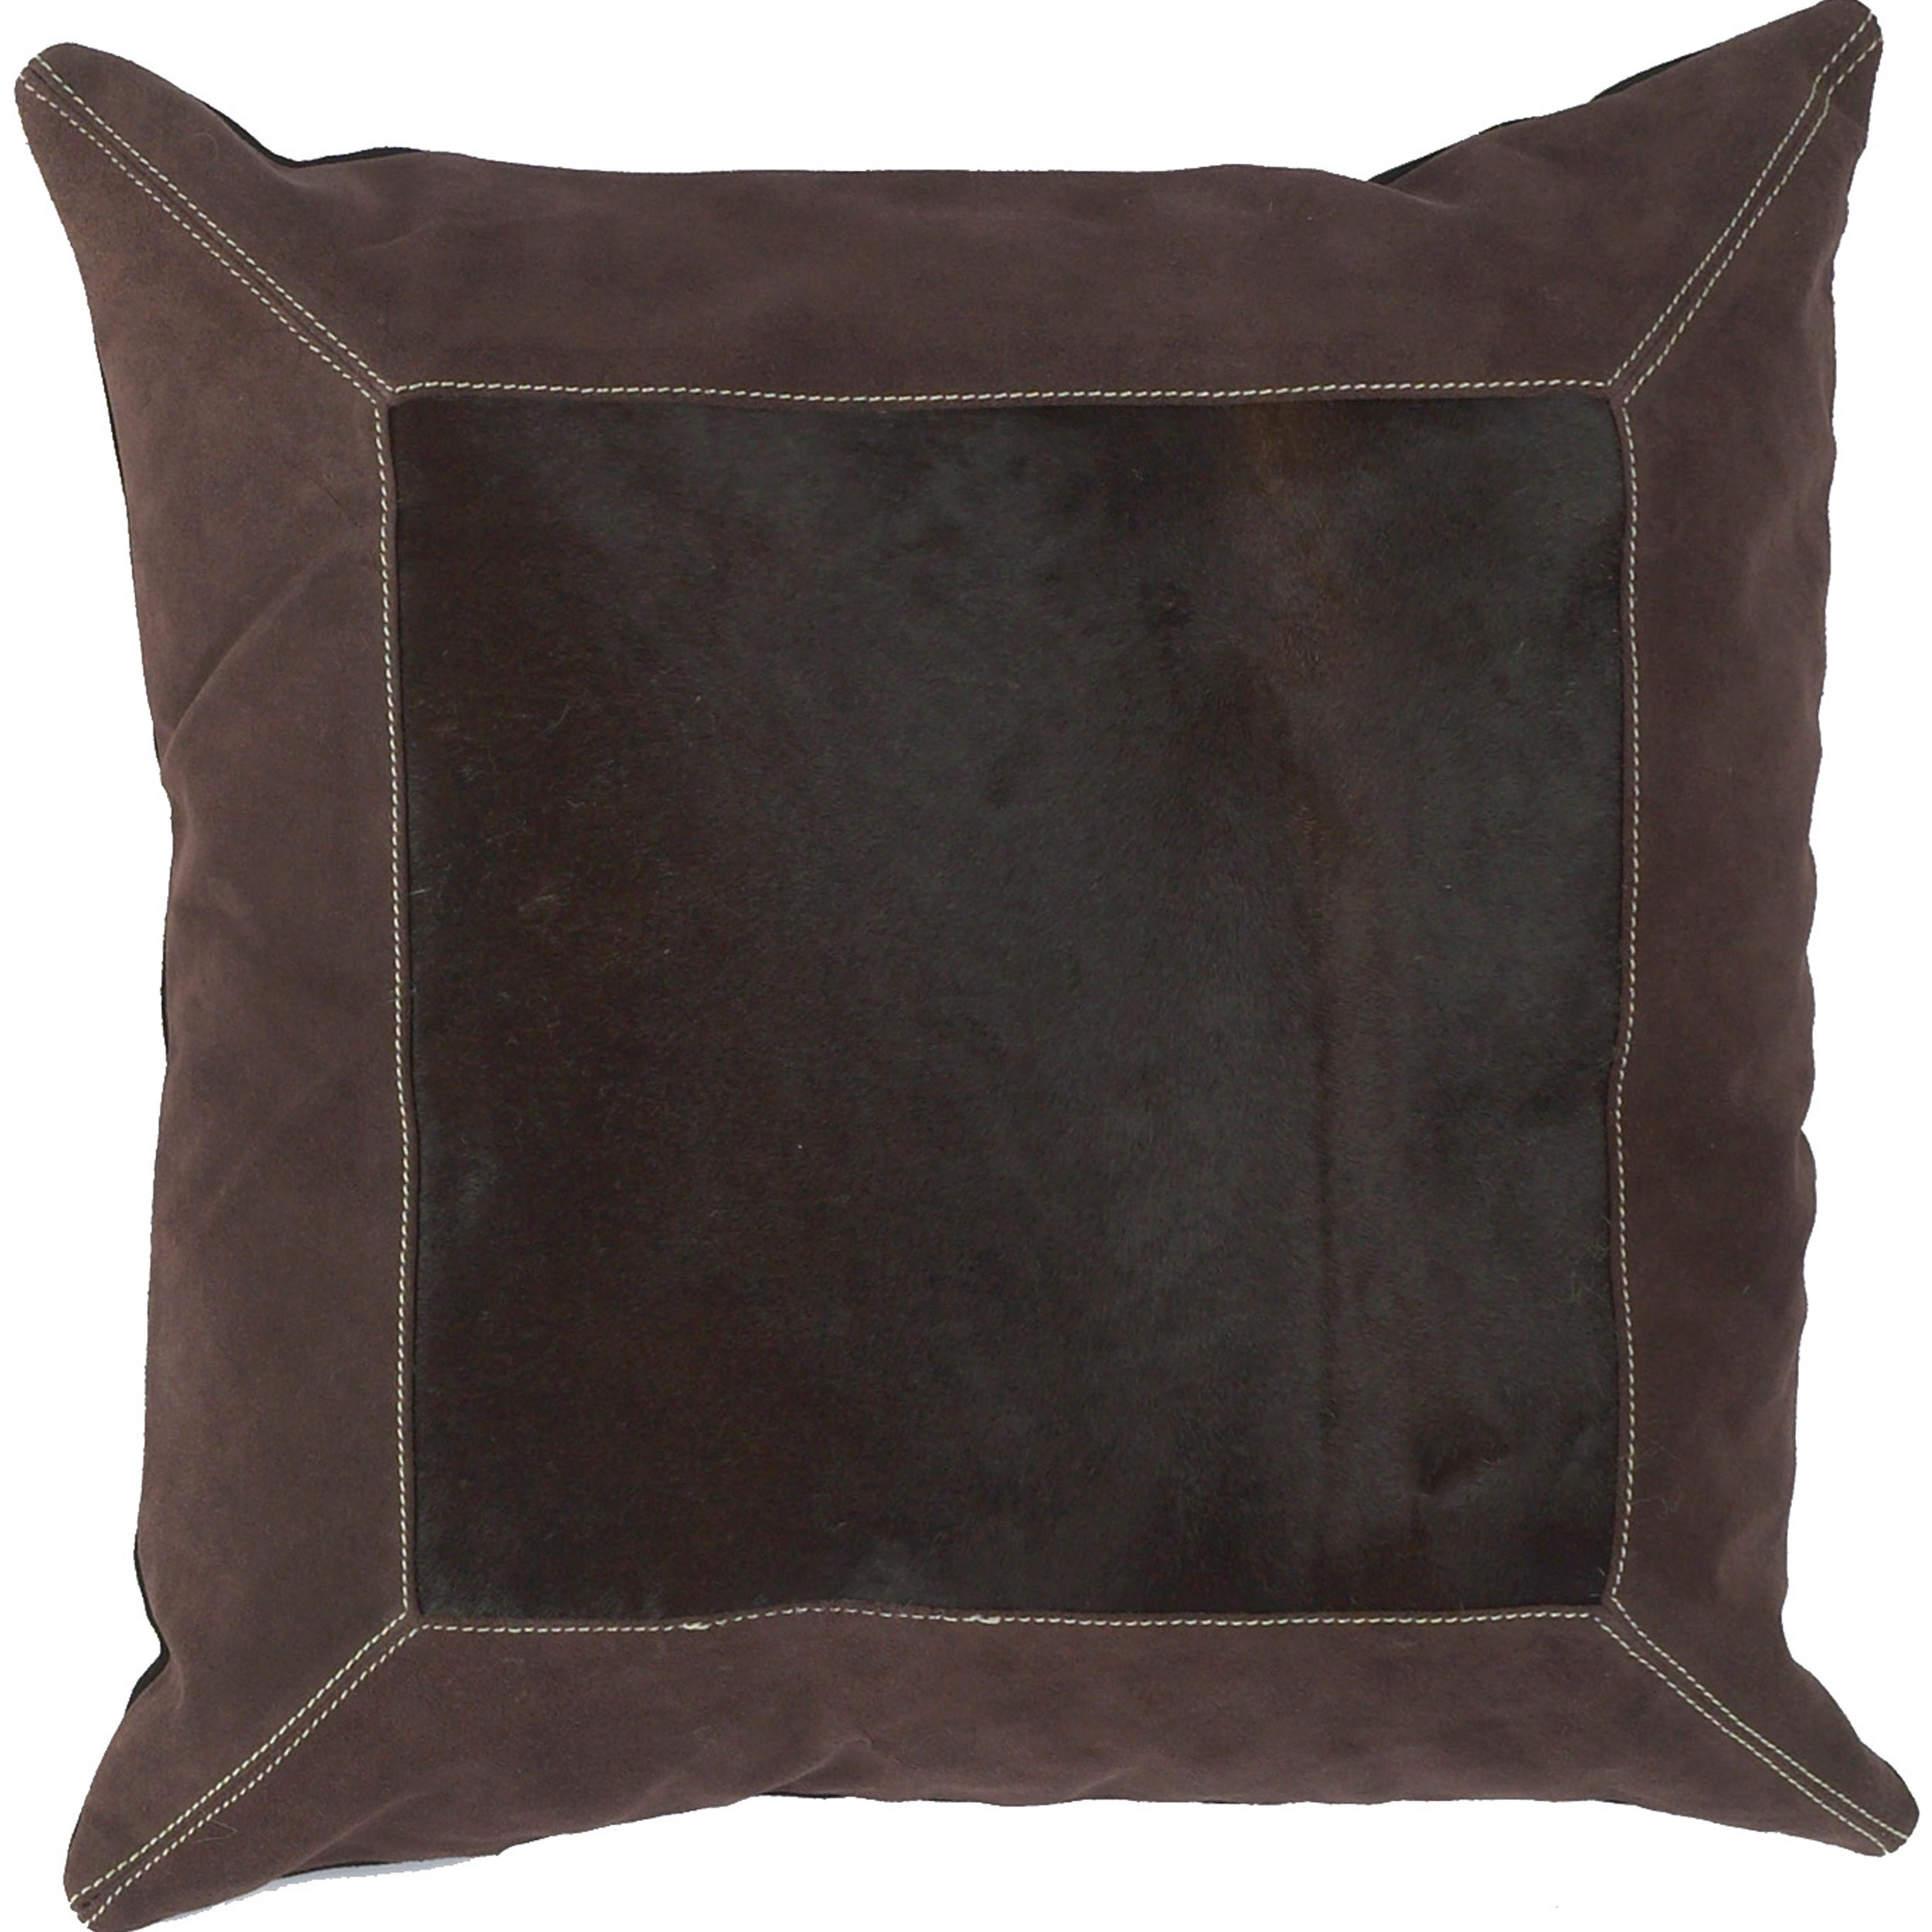 Decorative Alstead Feather Down Pillow